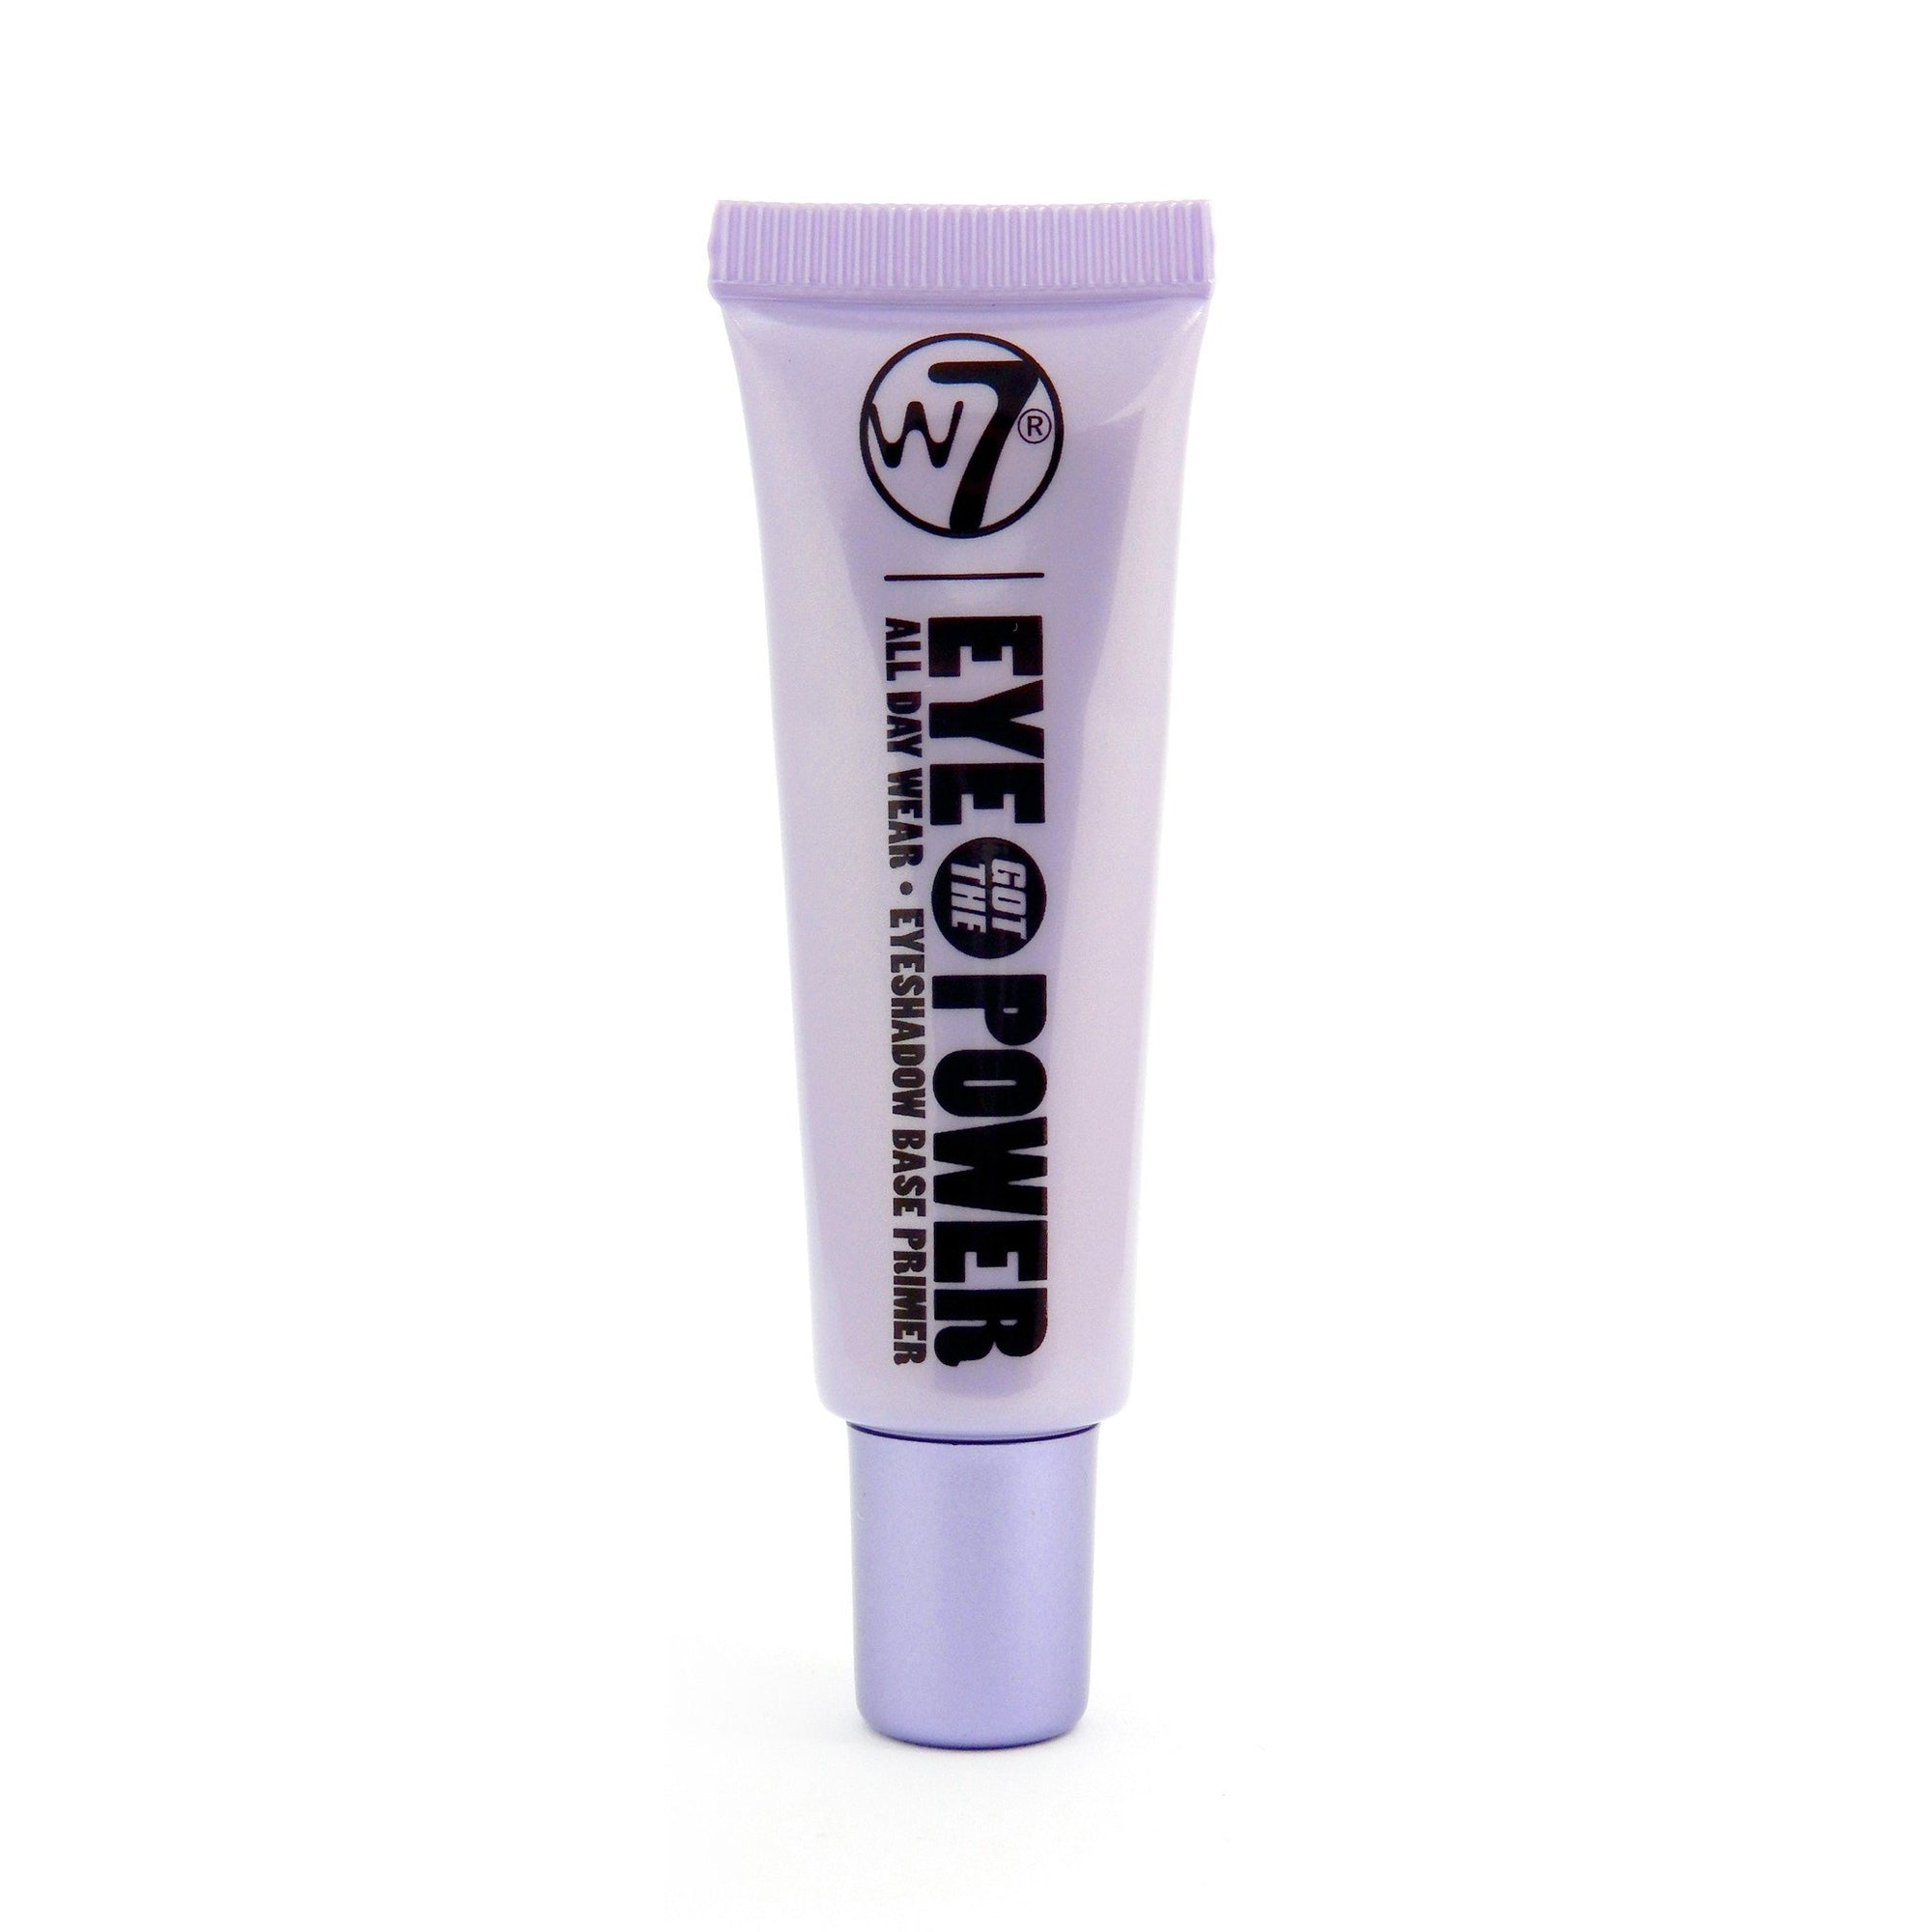 W7 Eye Got The Power Eyeshadow Primer - Natural